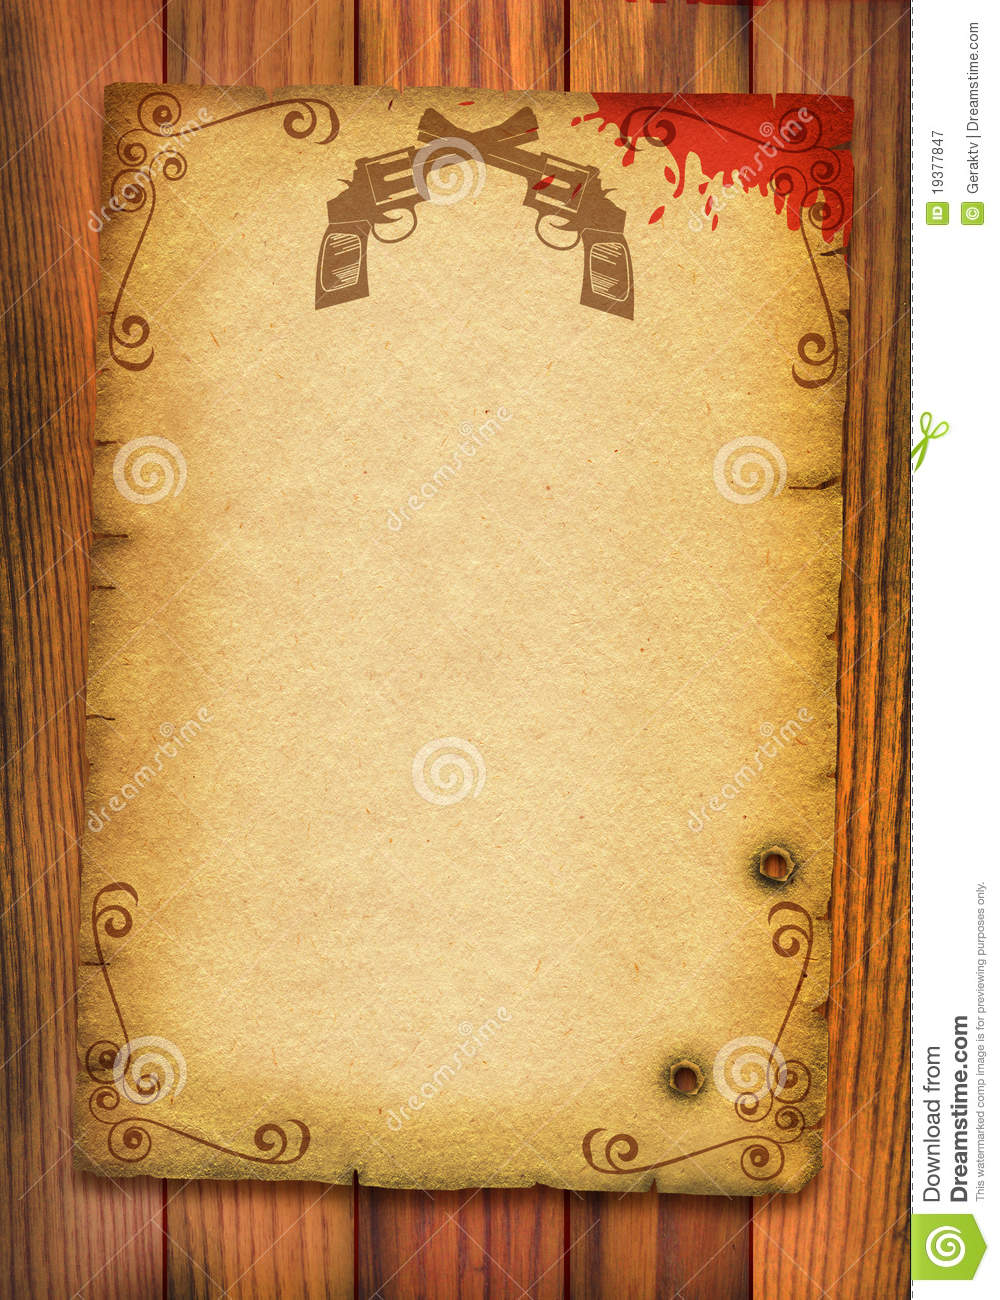 Old Paper Poster Background With Guns And Blood. Royalty ...